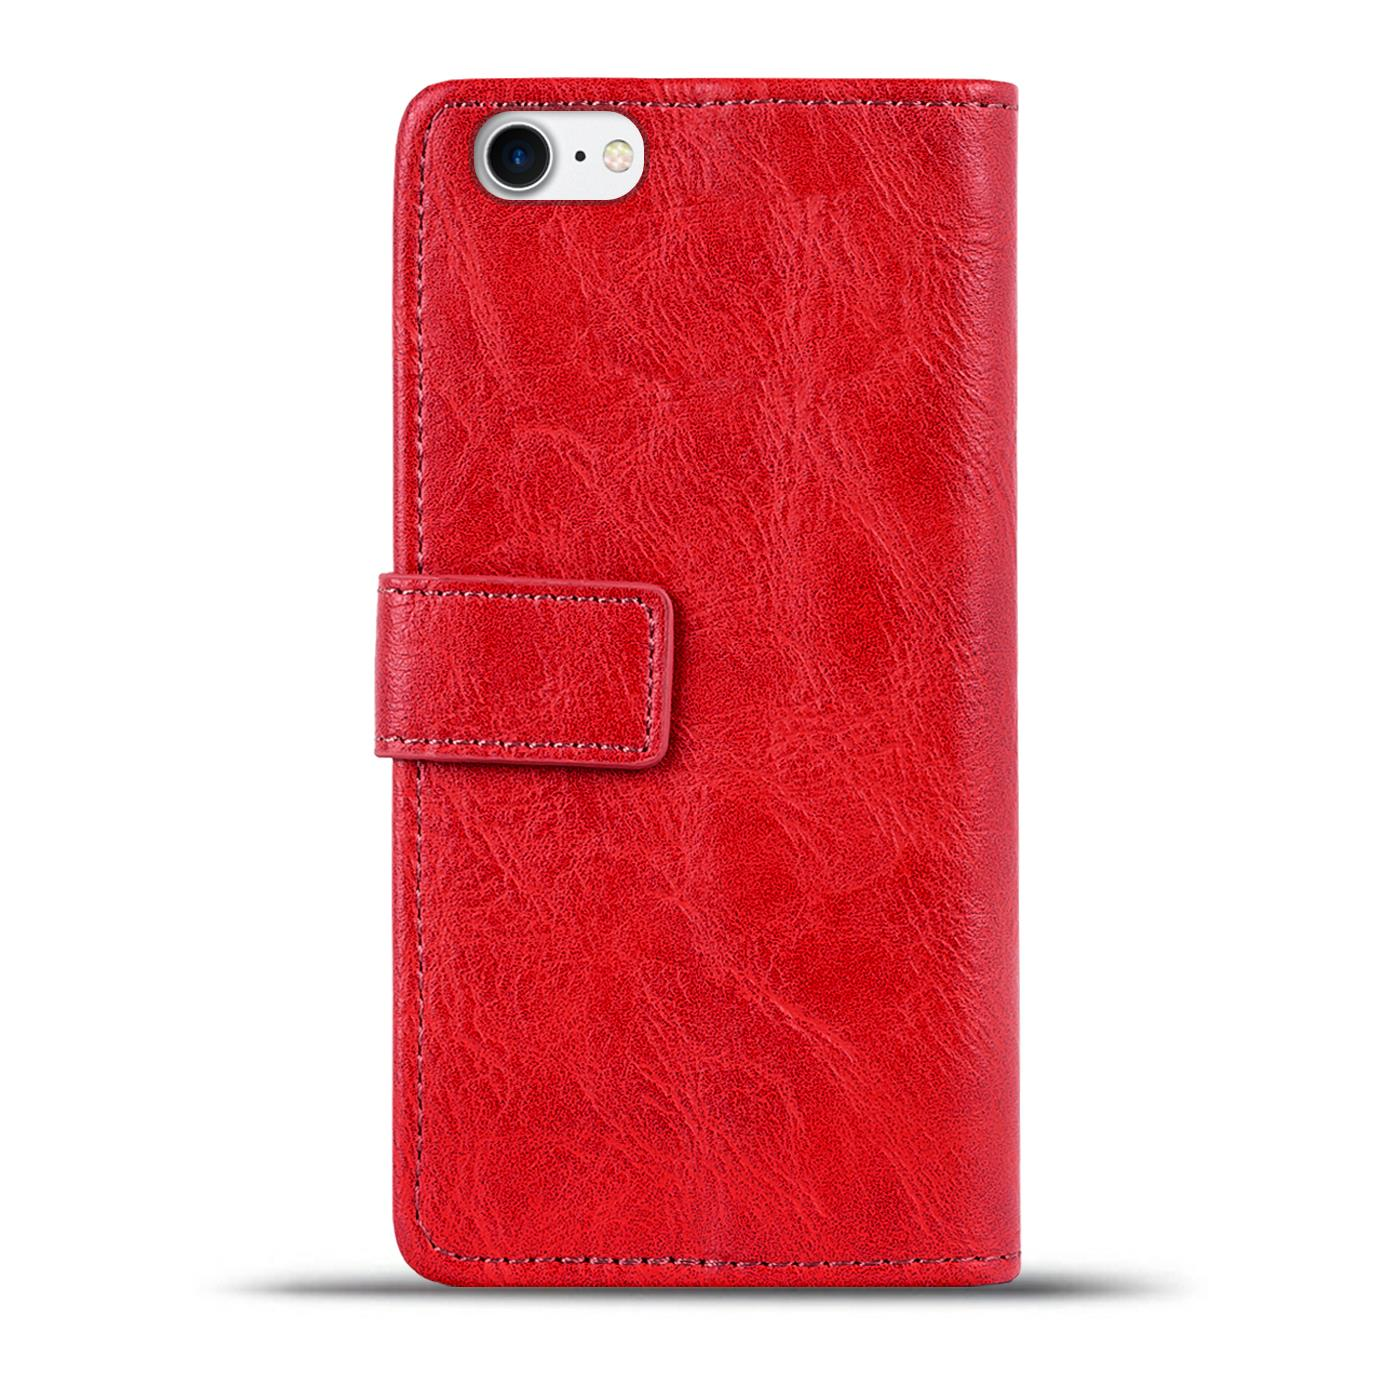 Book-Case-fuer-Apple-iPhone-Huelle-Handy-Tasche-Klapphuelle-Schutz-Flip-Cover-Etui